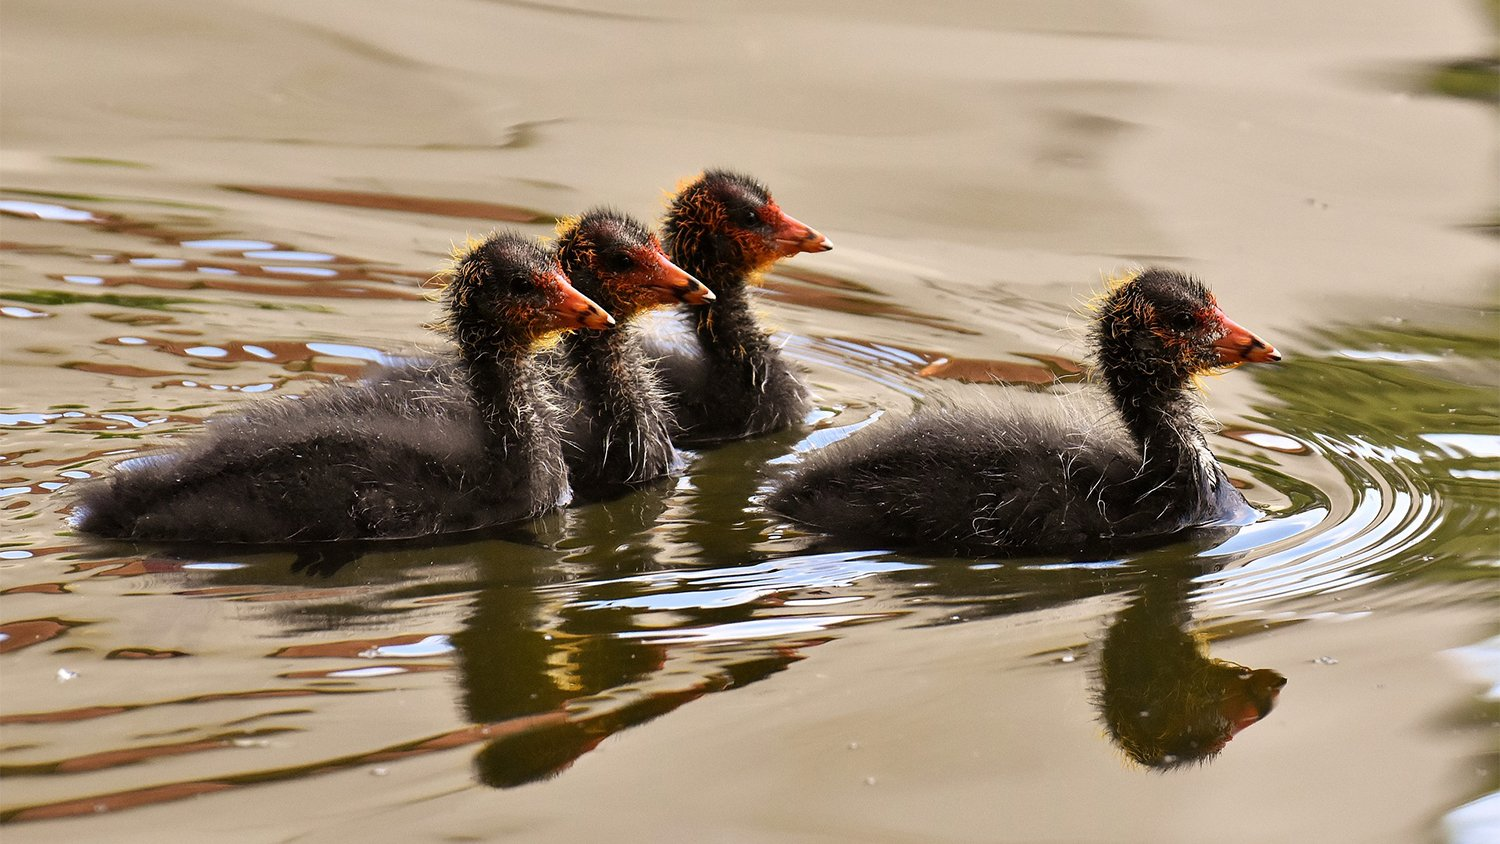 Four baby coots swimming, one of them is leading the other three who are in a row